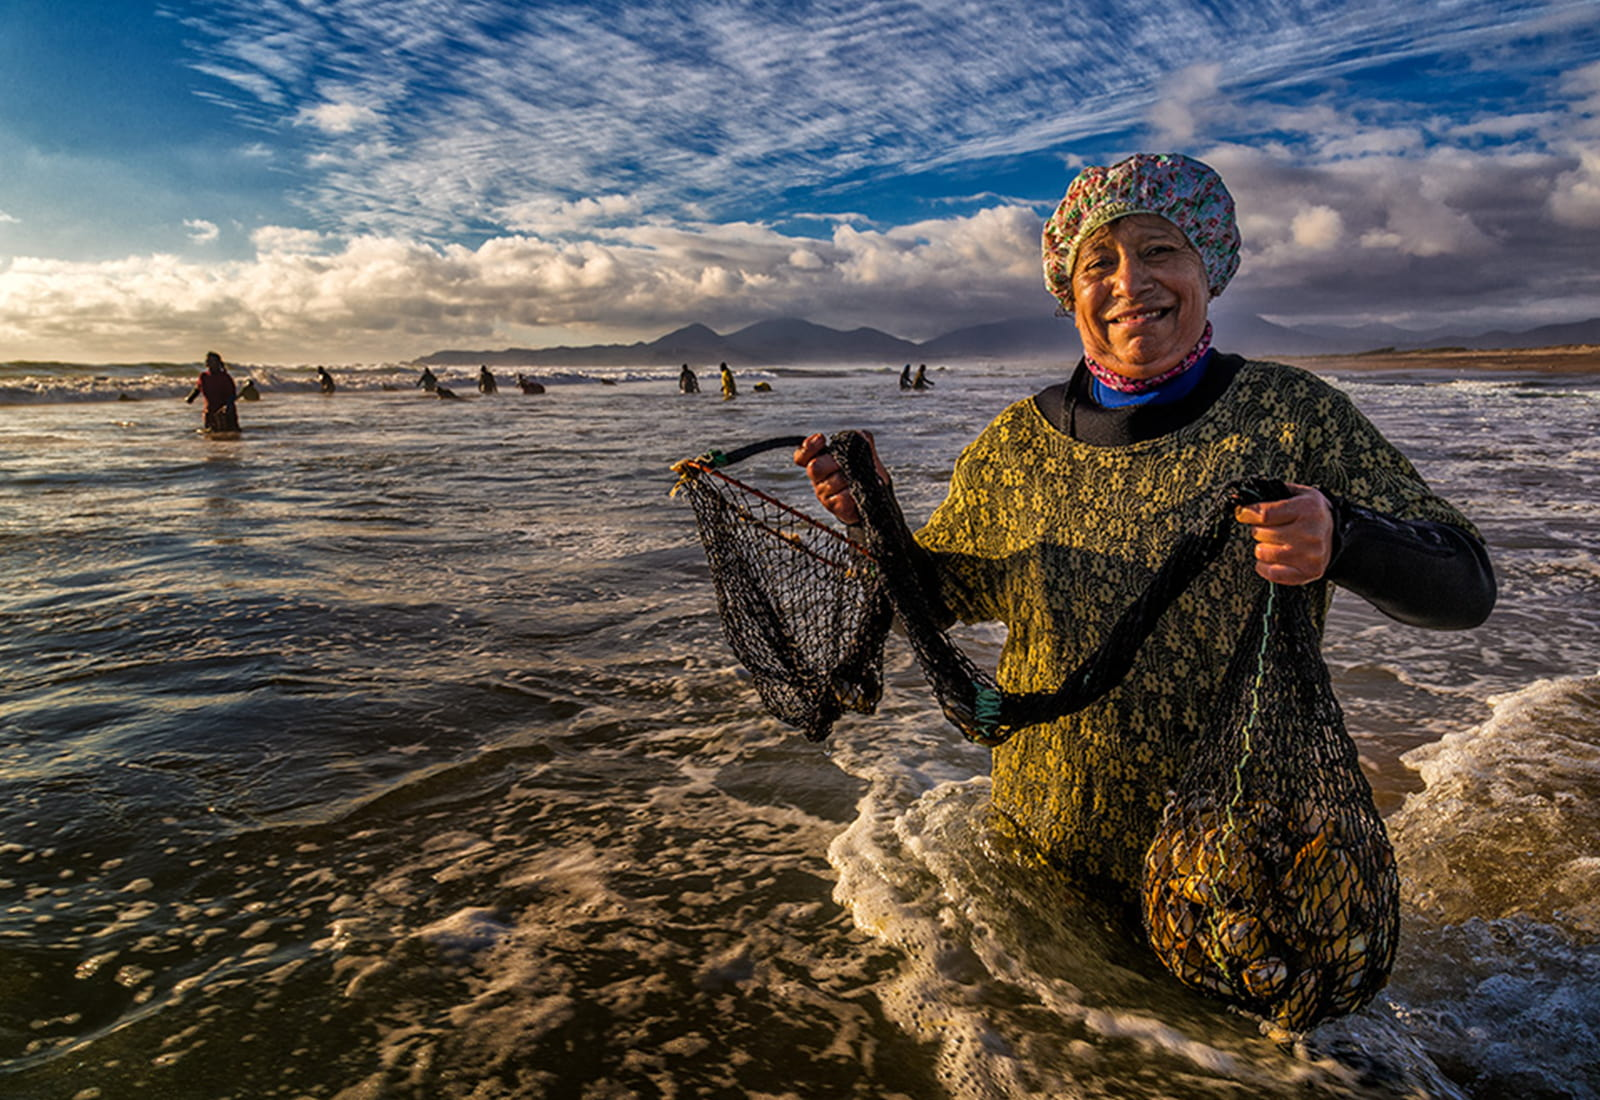 A local woman sustainably fishes in Brazil, ensuring our ocean survives and thrives in the face of climate change.